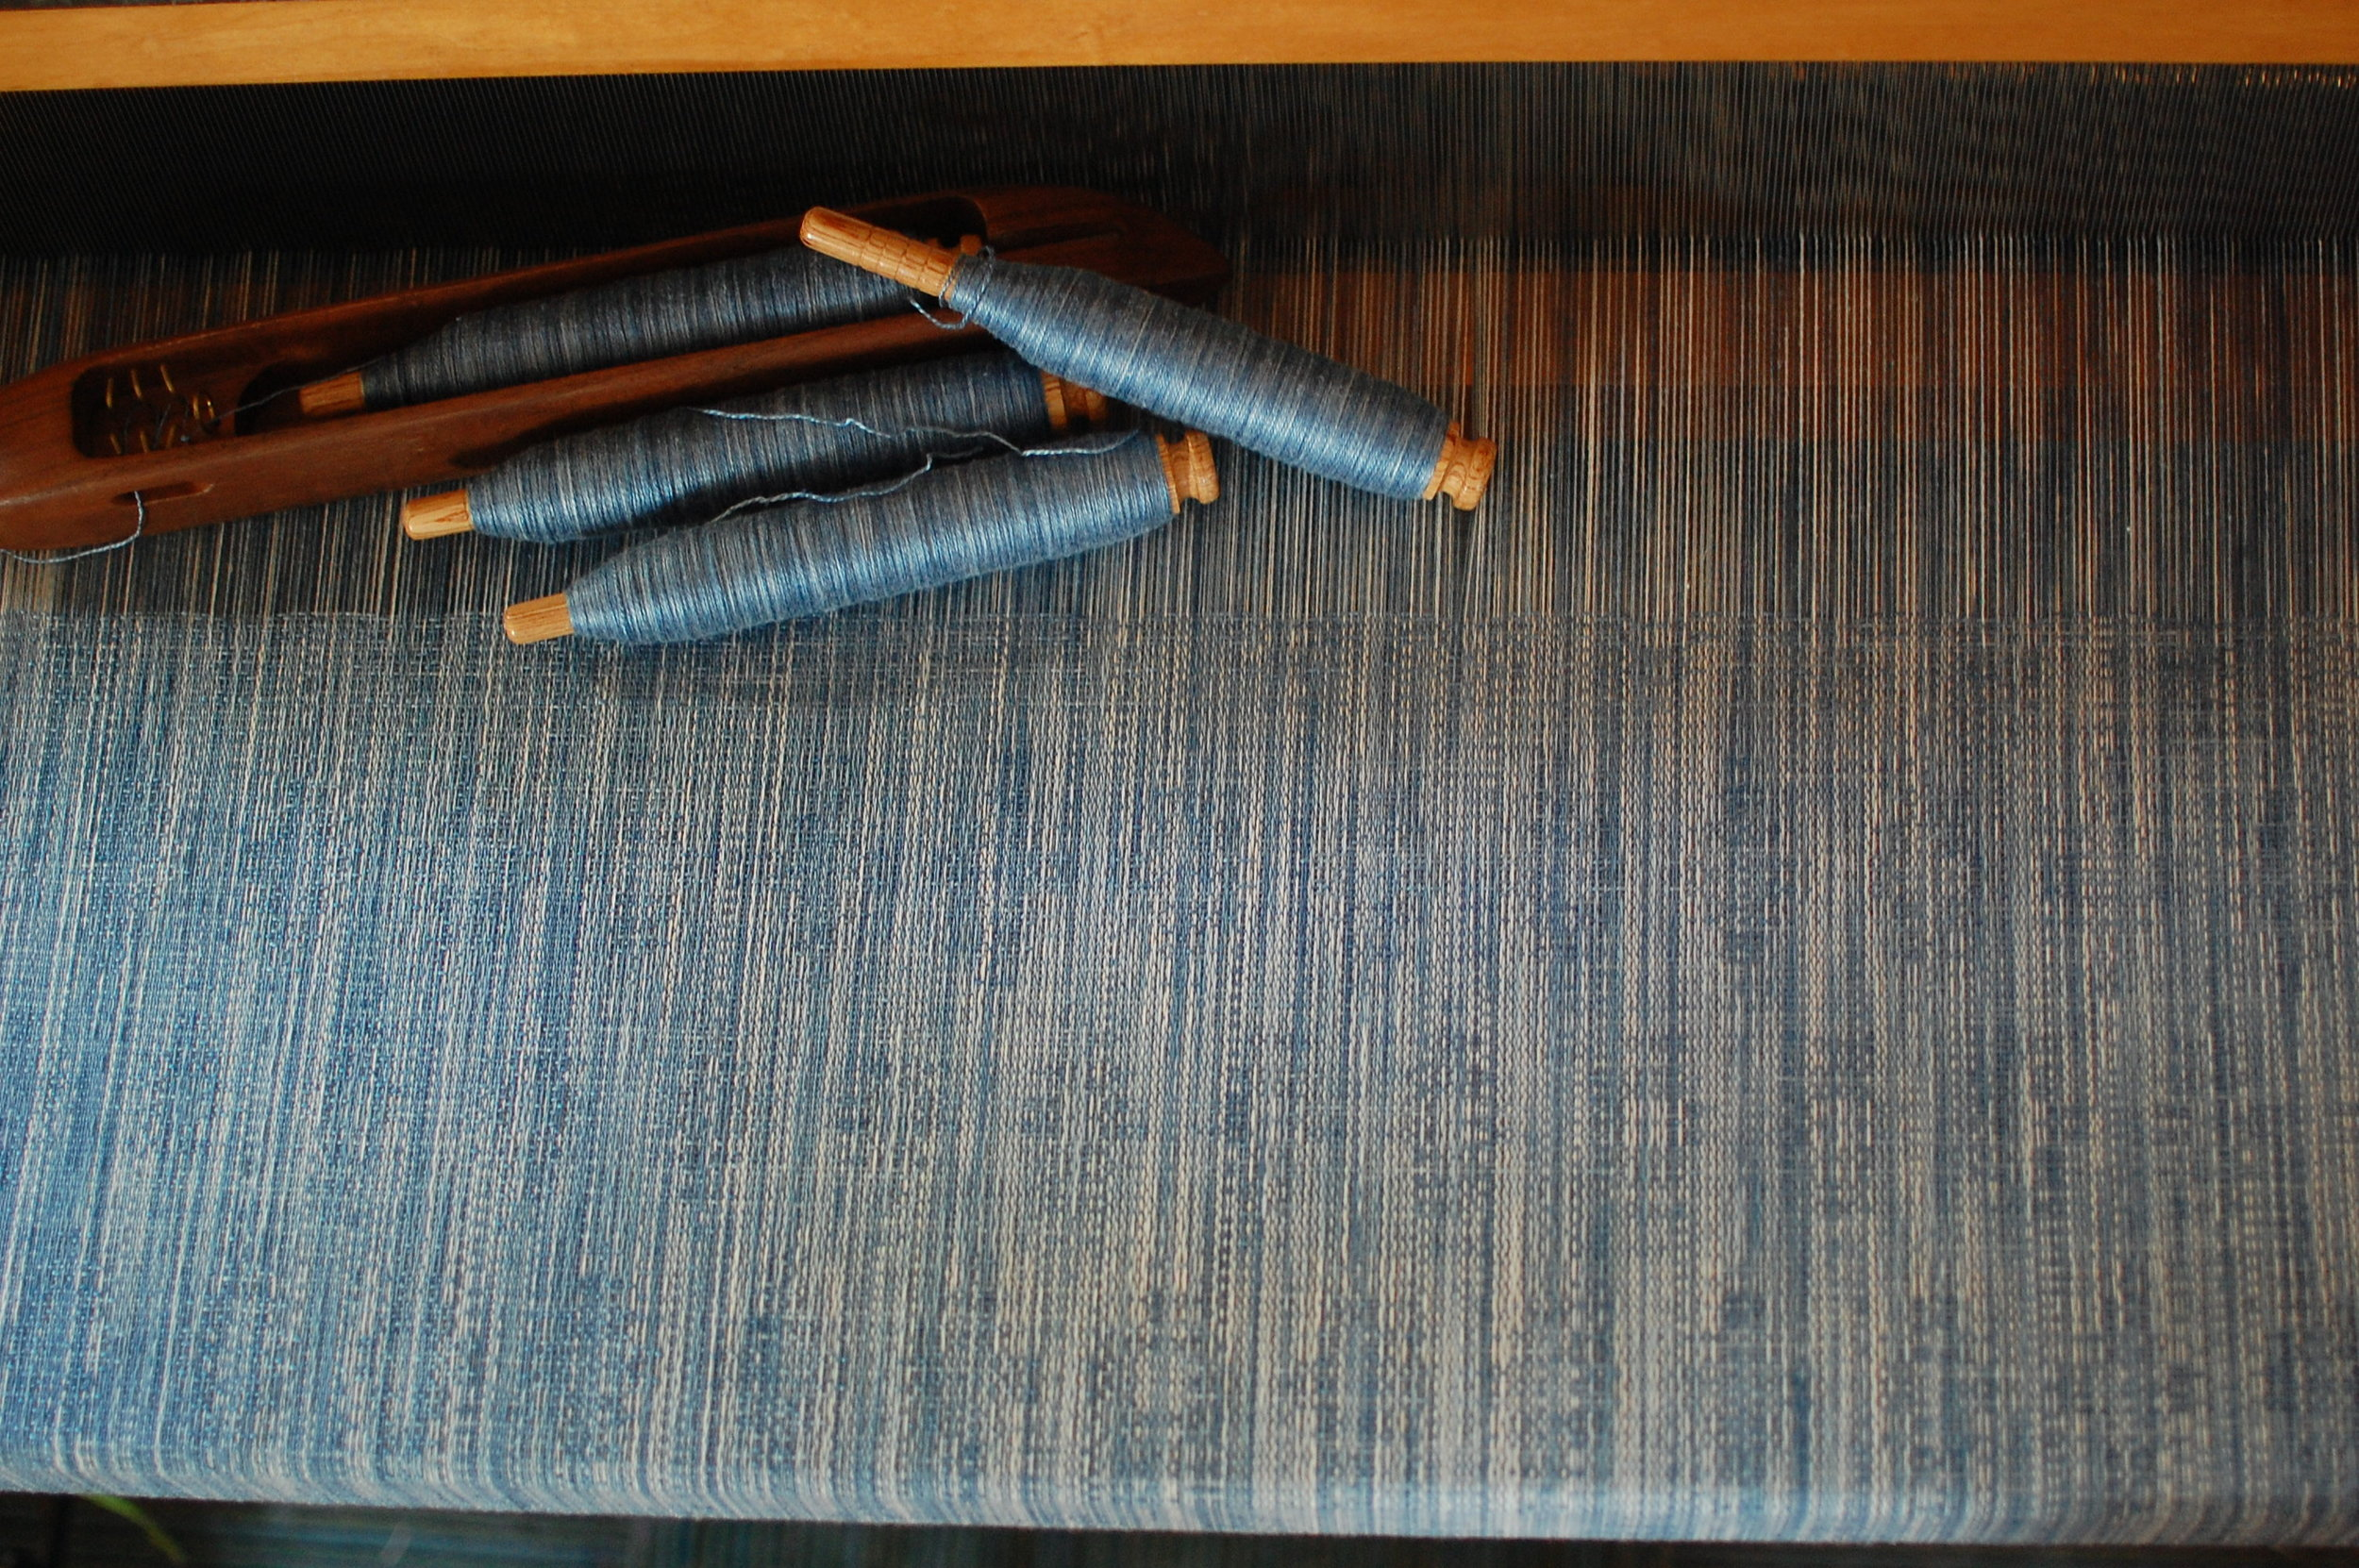 Indigo v.2 Blueprint with indigo-dyed silk/seacell weft 5.0 meters - shown here during weaving